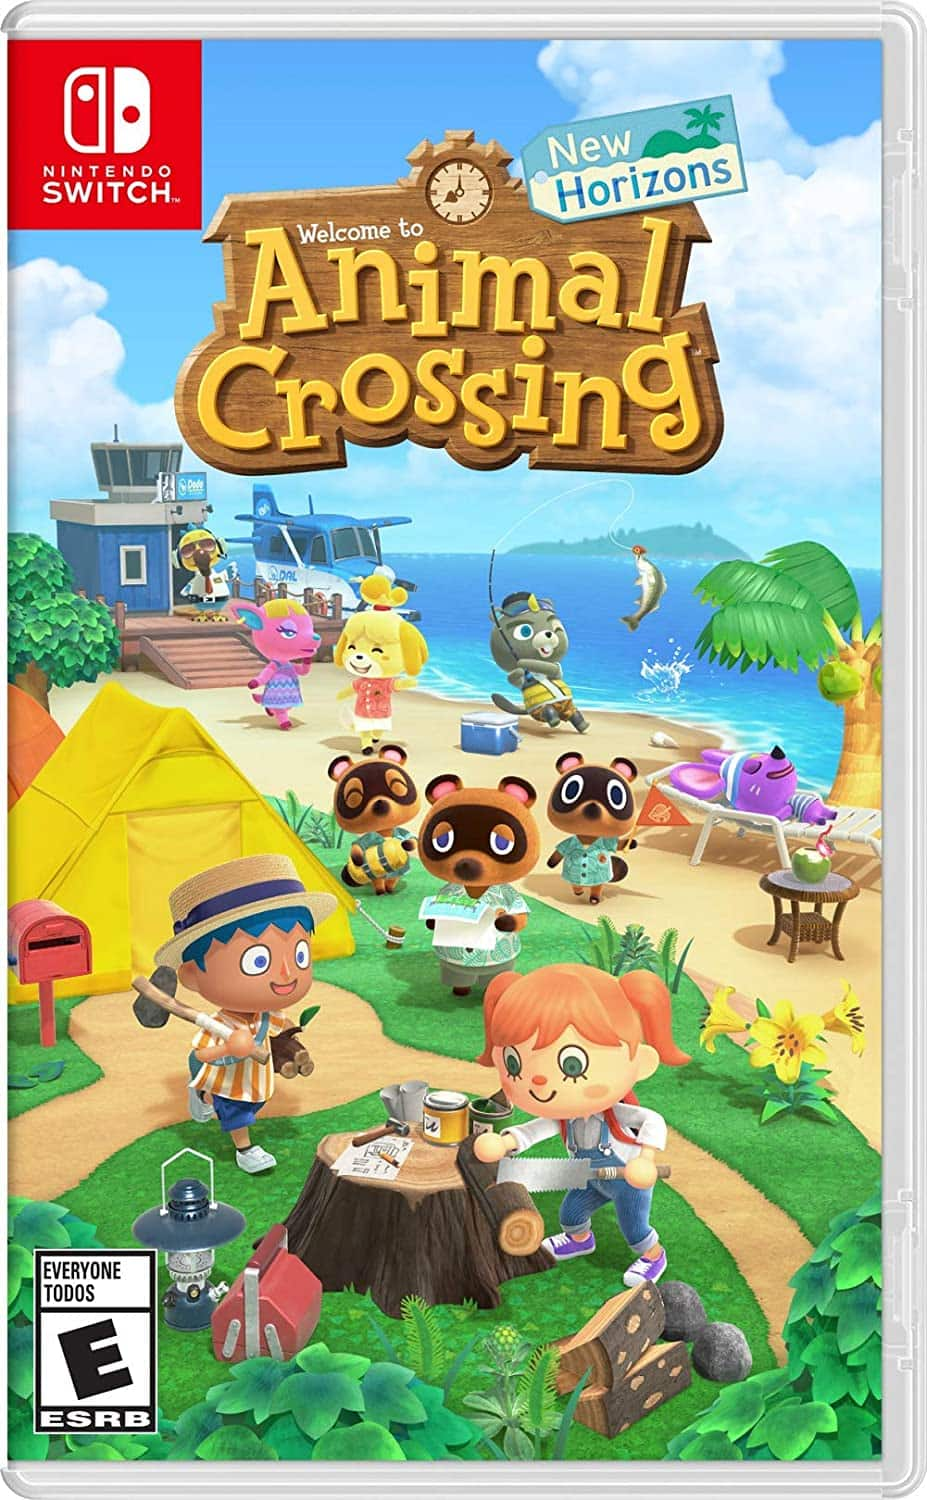 Animal Crossing New Horizons - Nintendo Switch Physical copy $50 at Amazon